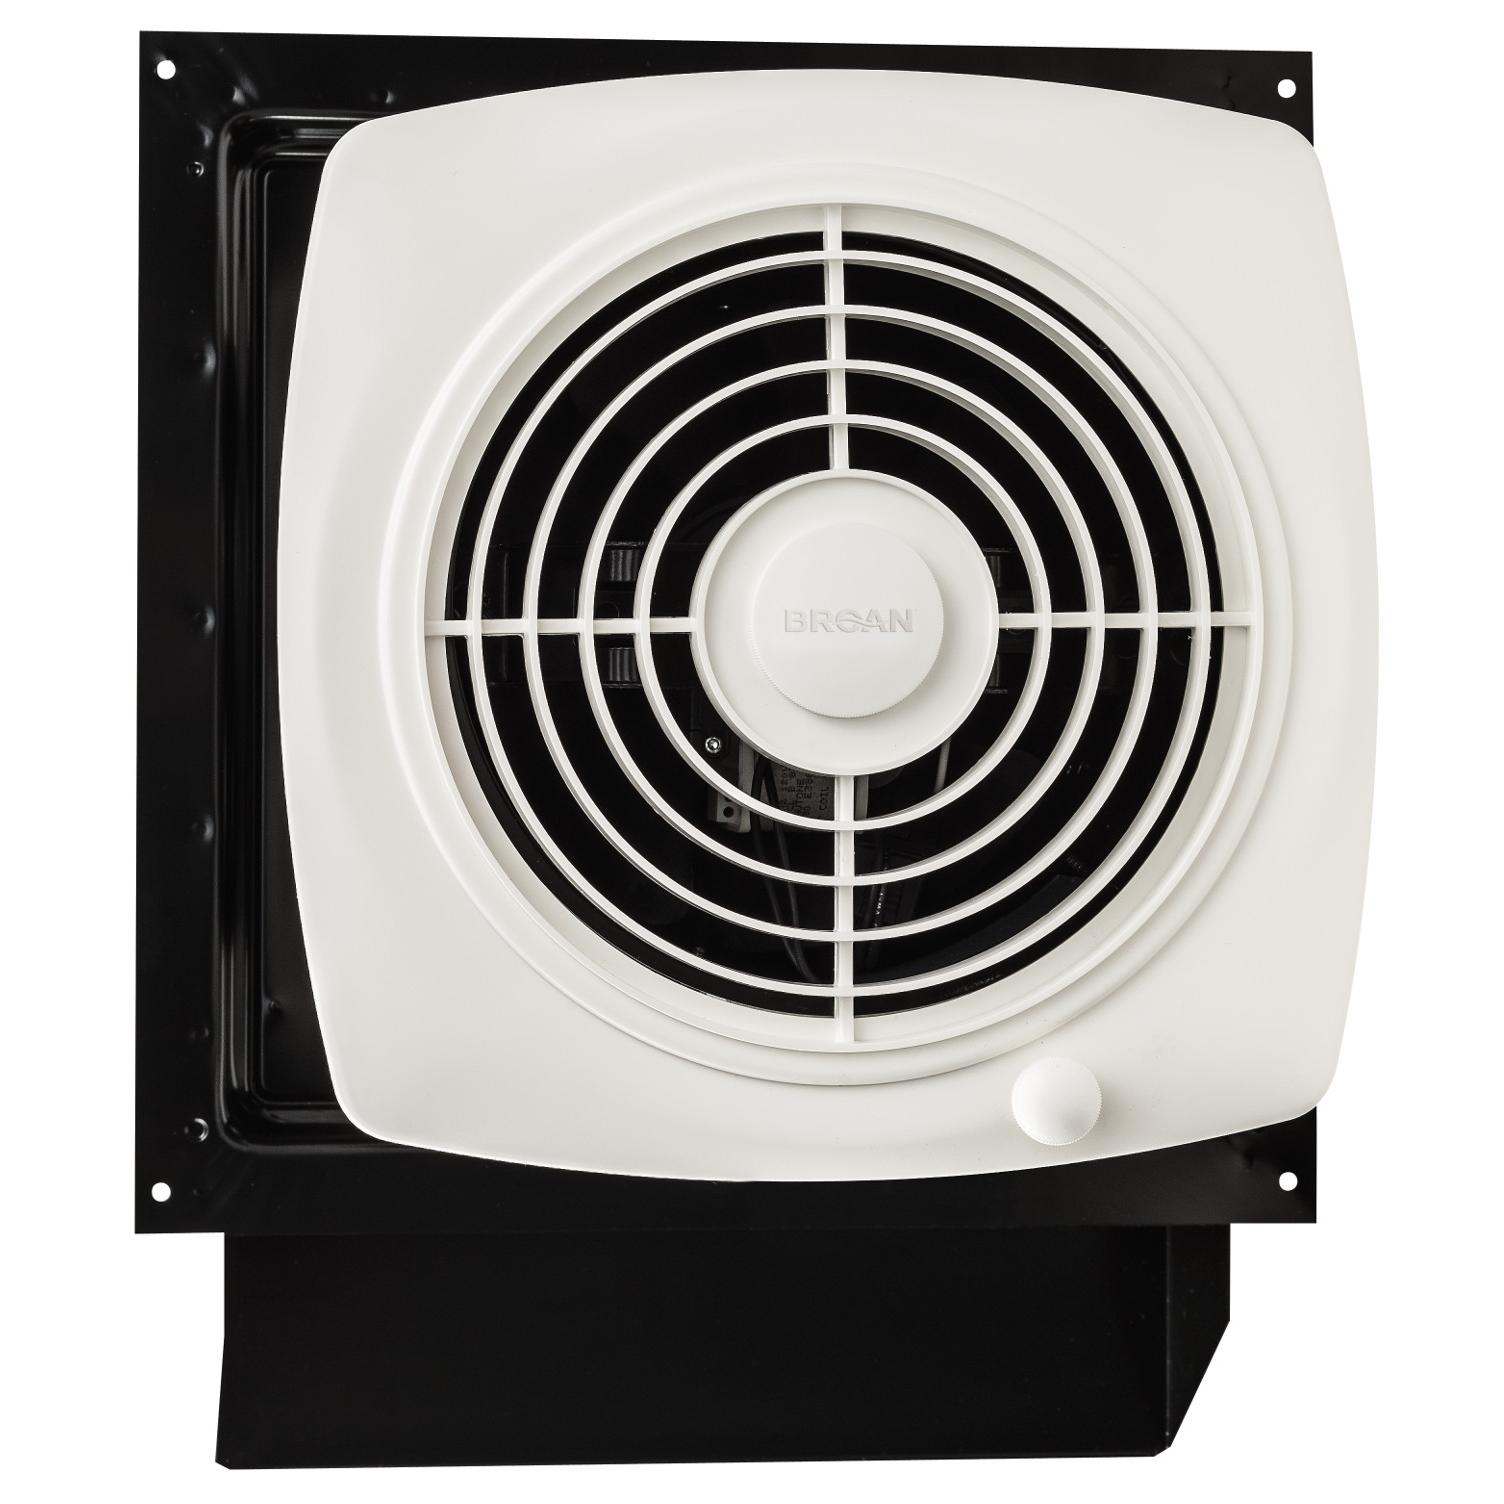 Through Wall Fan : Broan s through wall fan with integral rotary switch